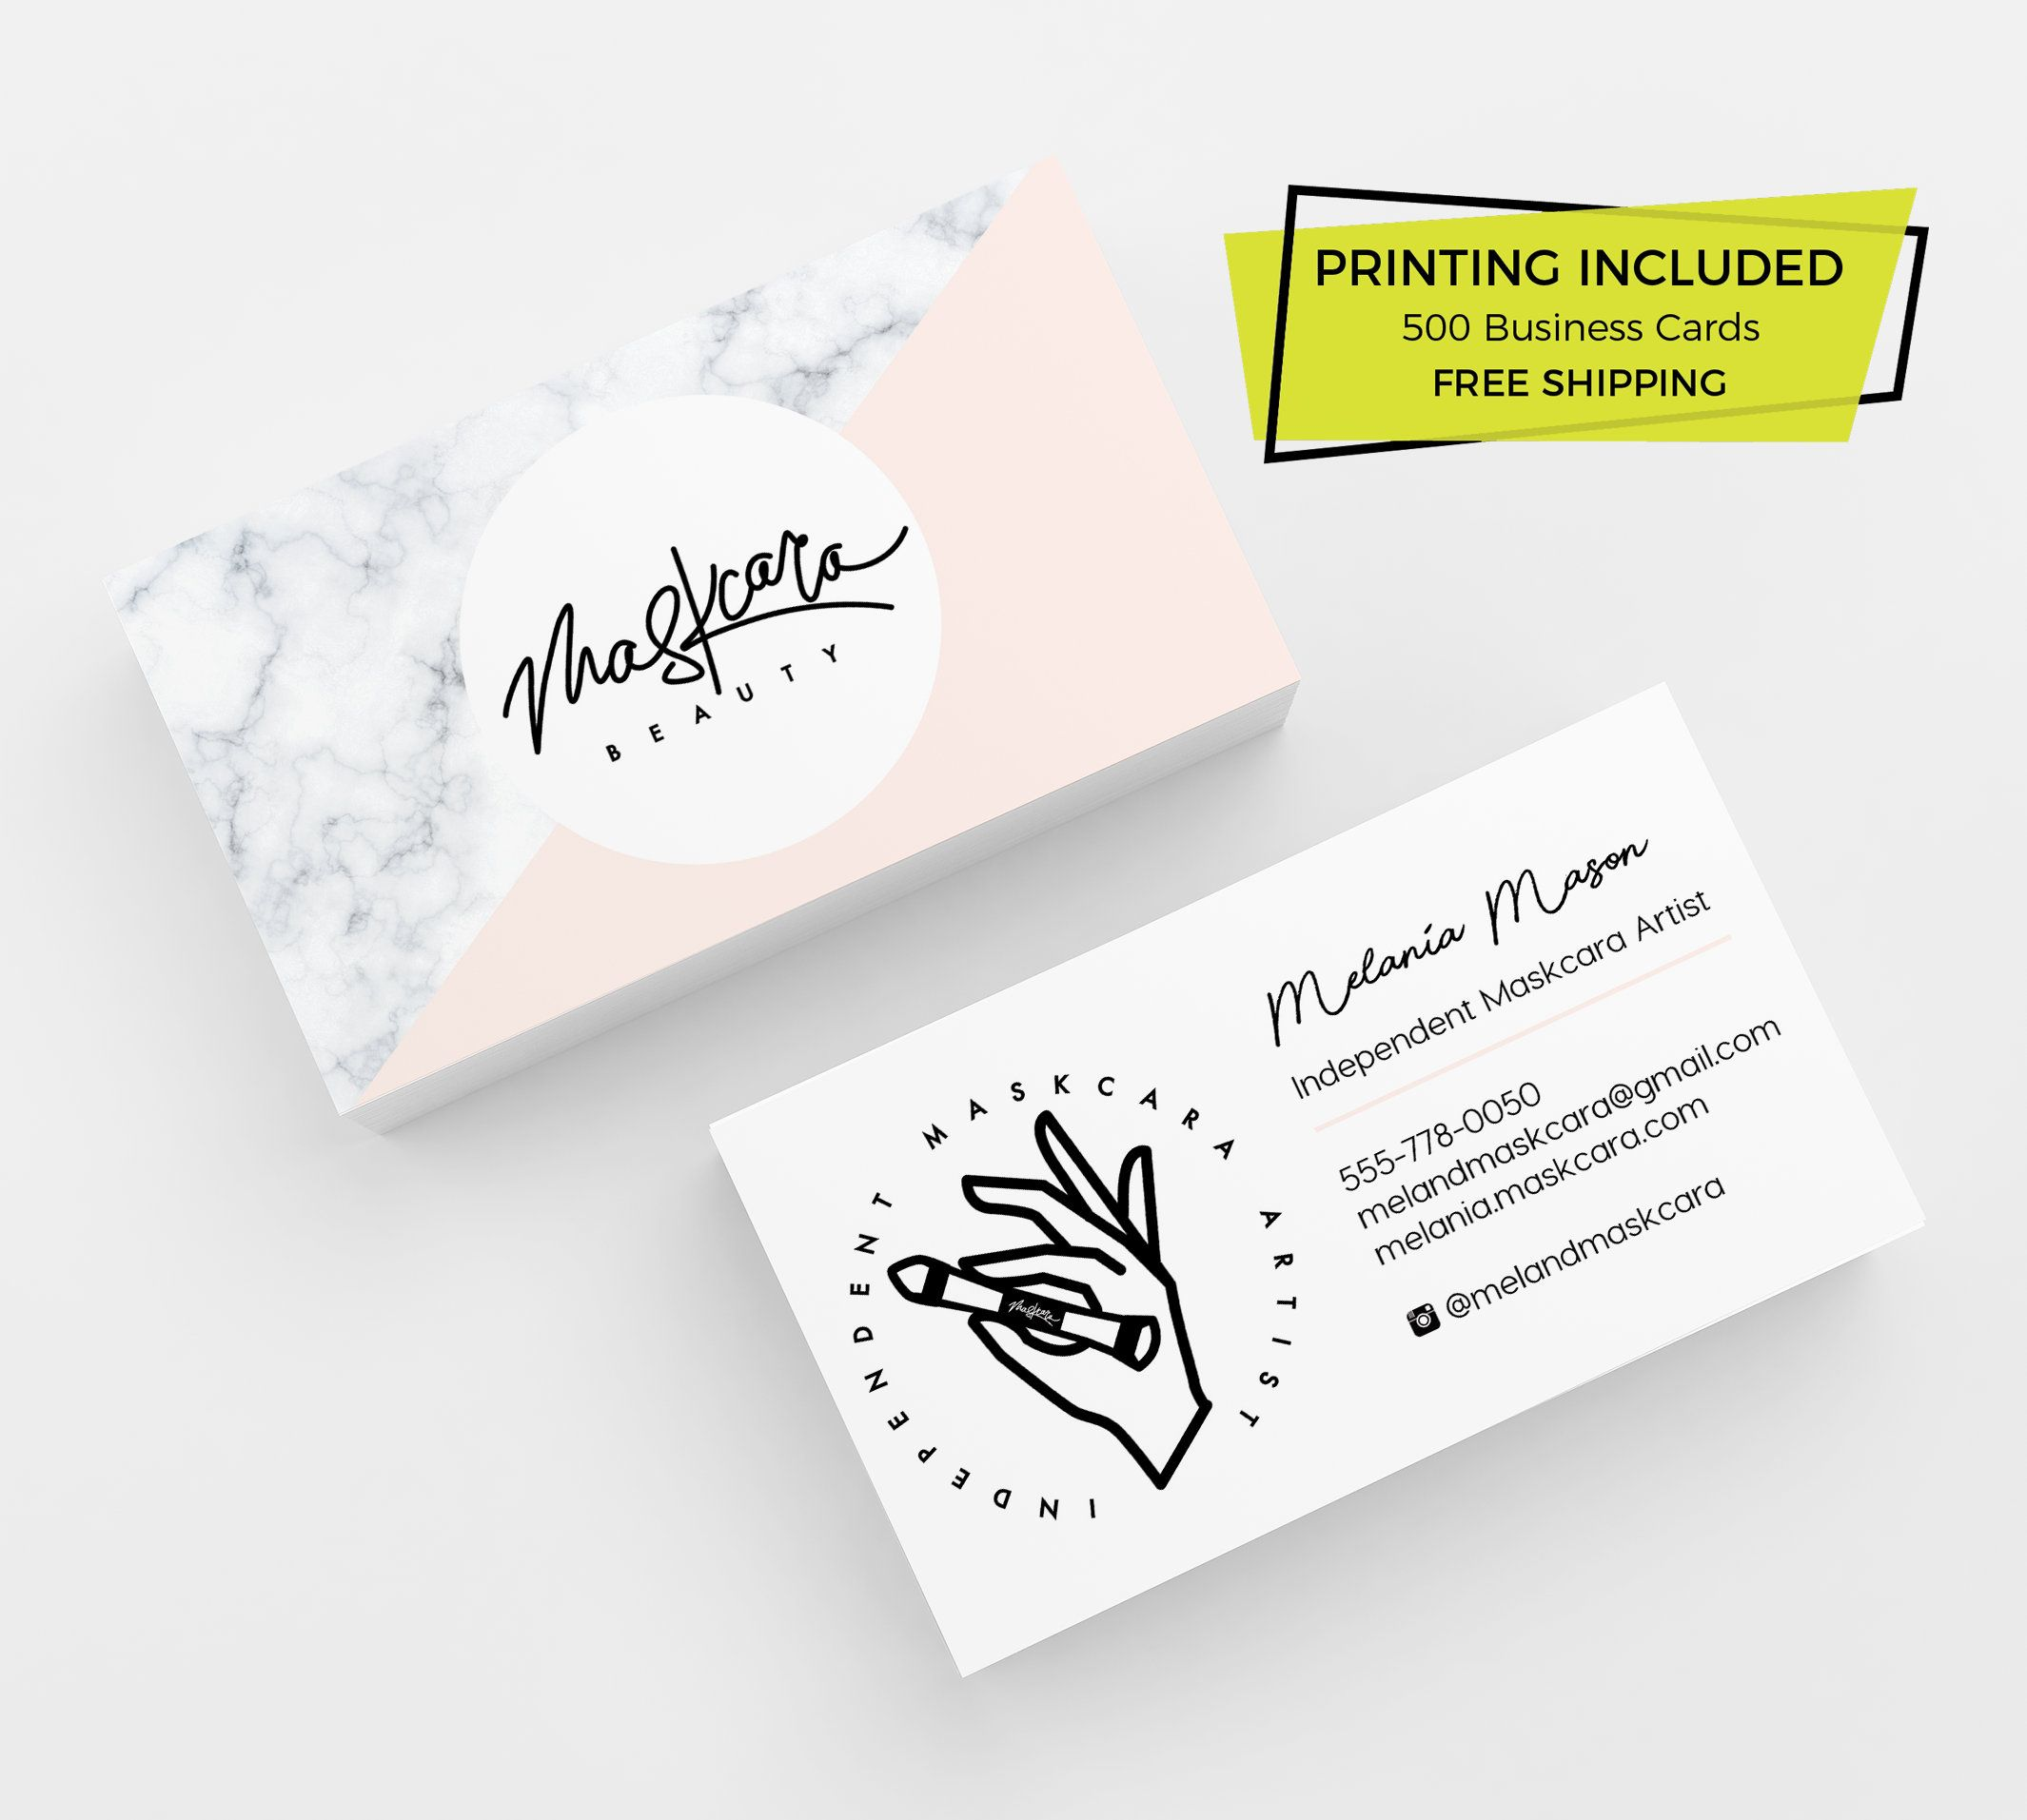 Maskcara Beauty Business Card 500 Printed Business Cards Etsy Beauty Business Beauty Business Cards Printing Business Cards